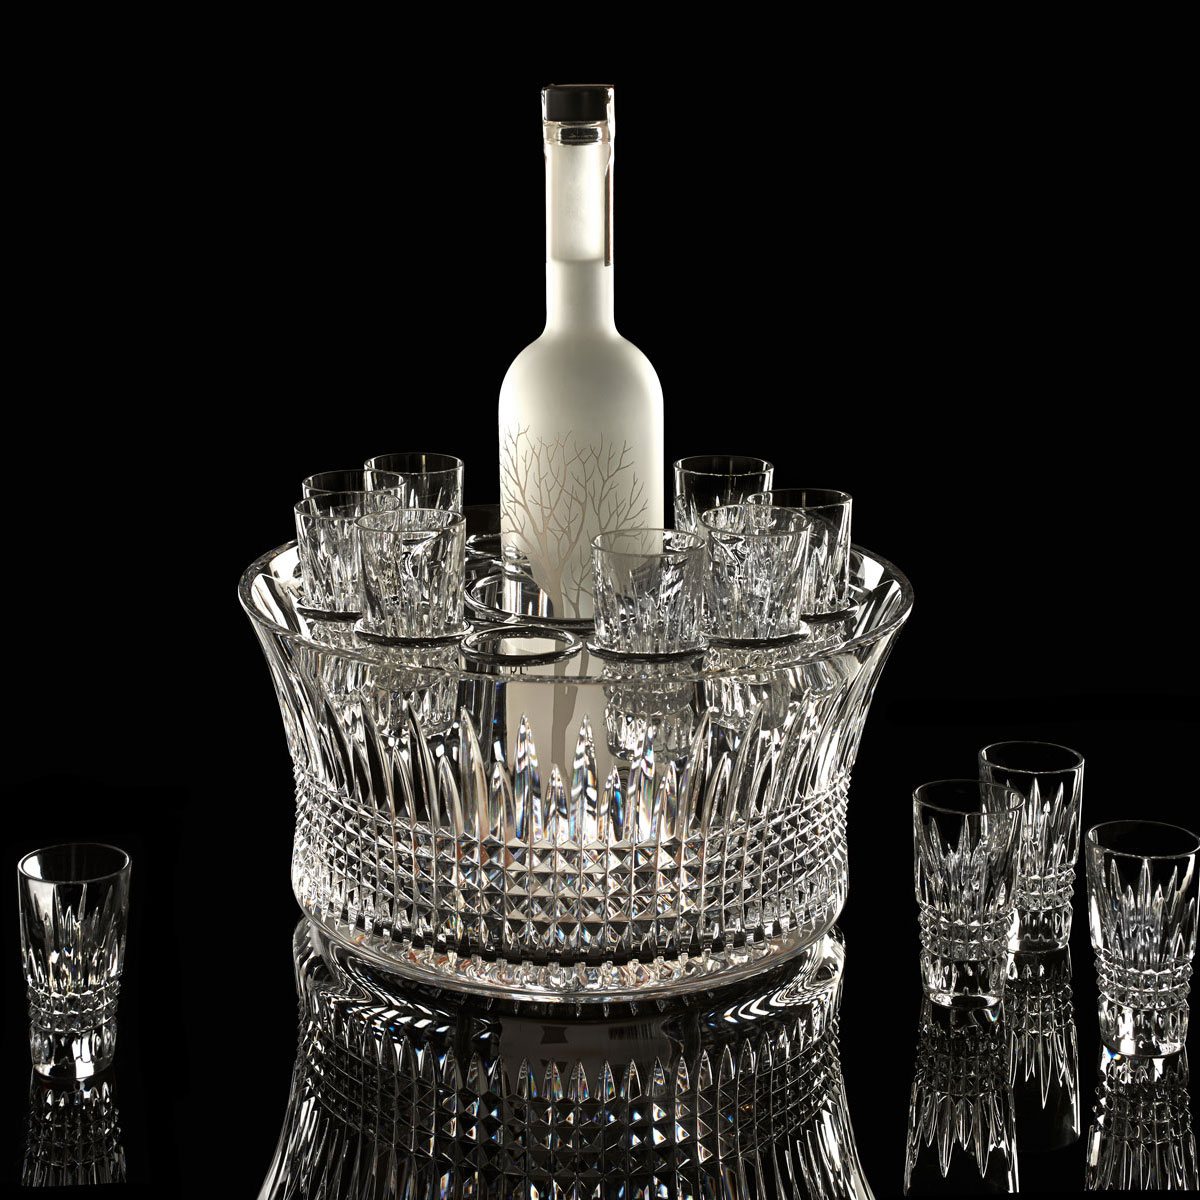 Waterford Crystal, Lismore Diamond Vodka Set With 6 Shot Crystal Glasses and Chill Crystal Bowl